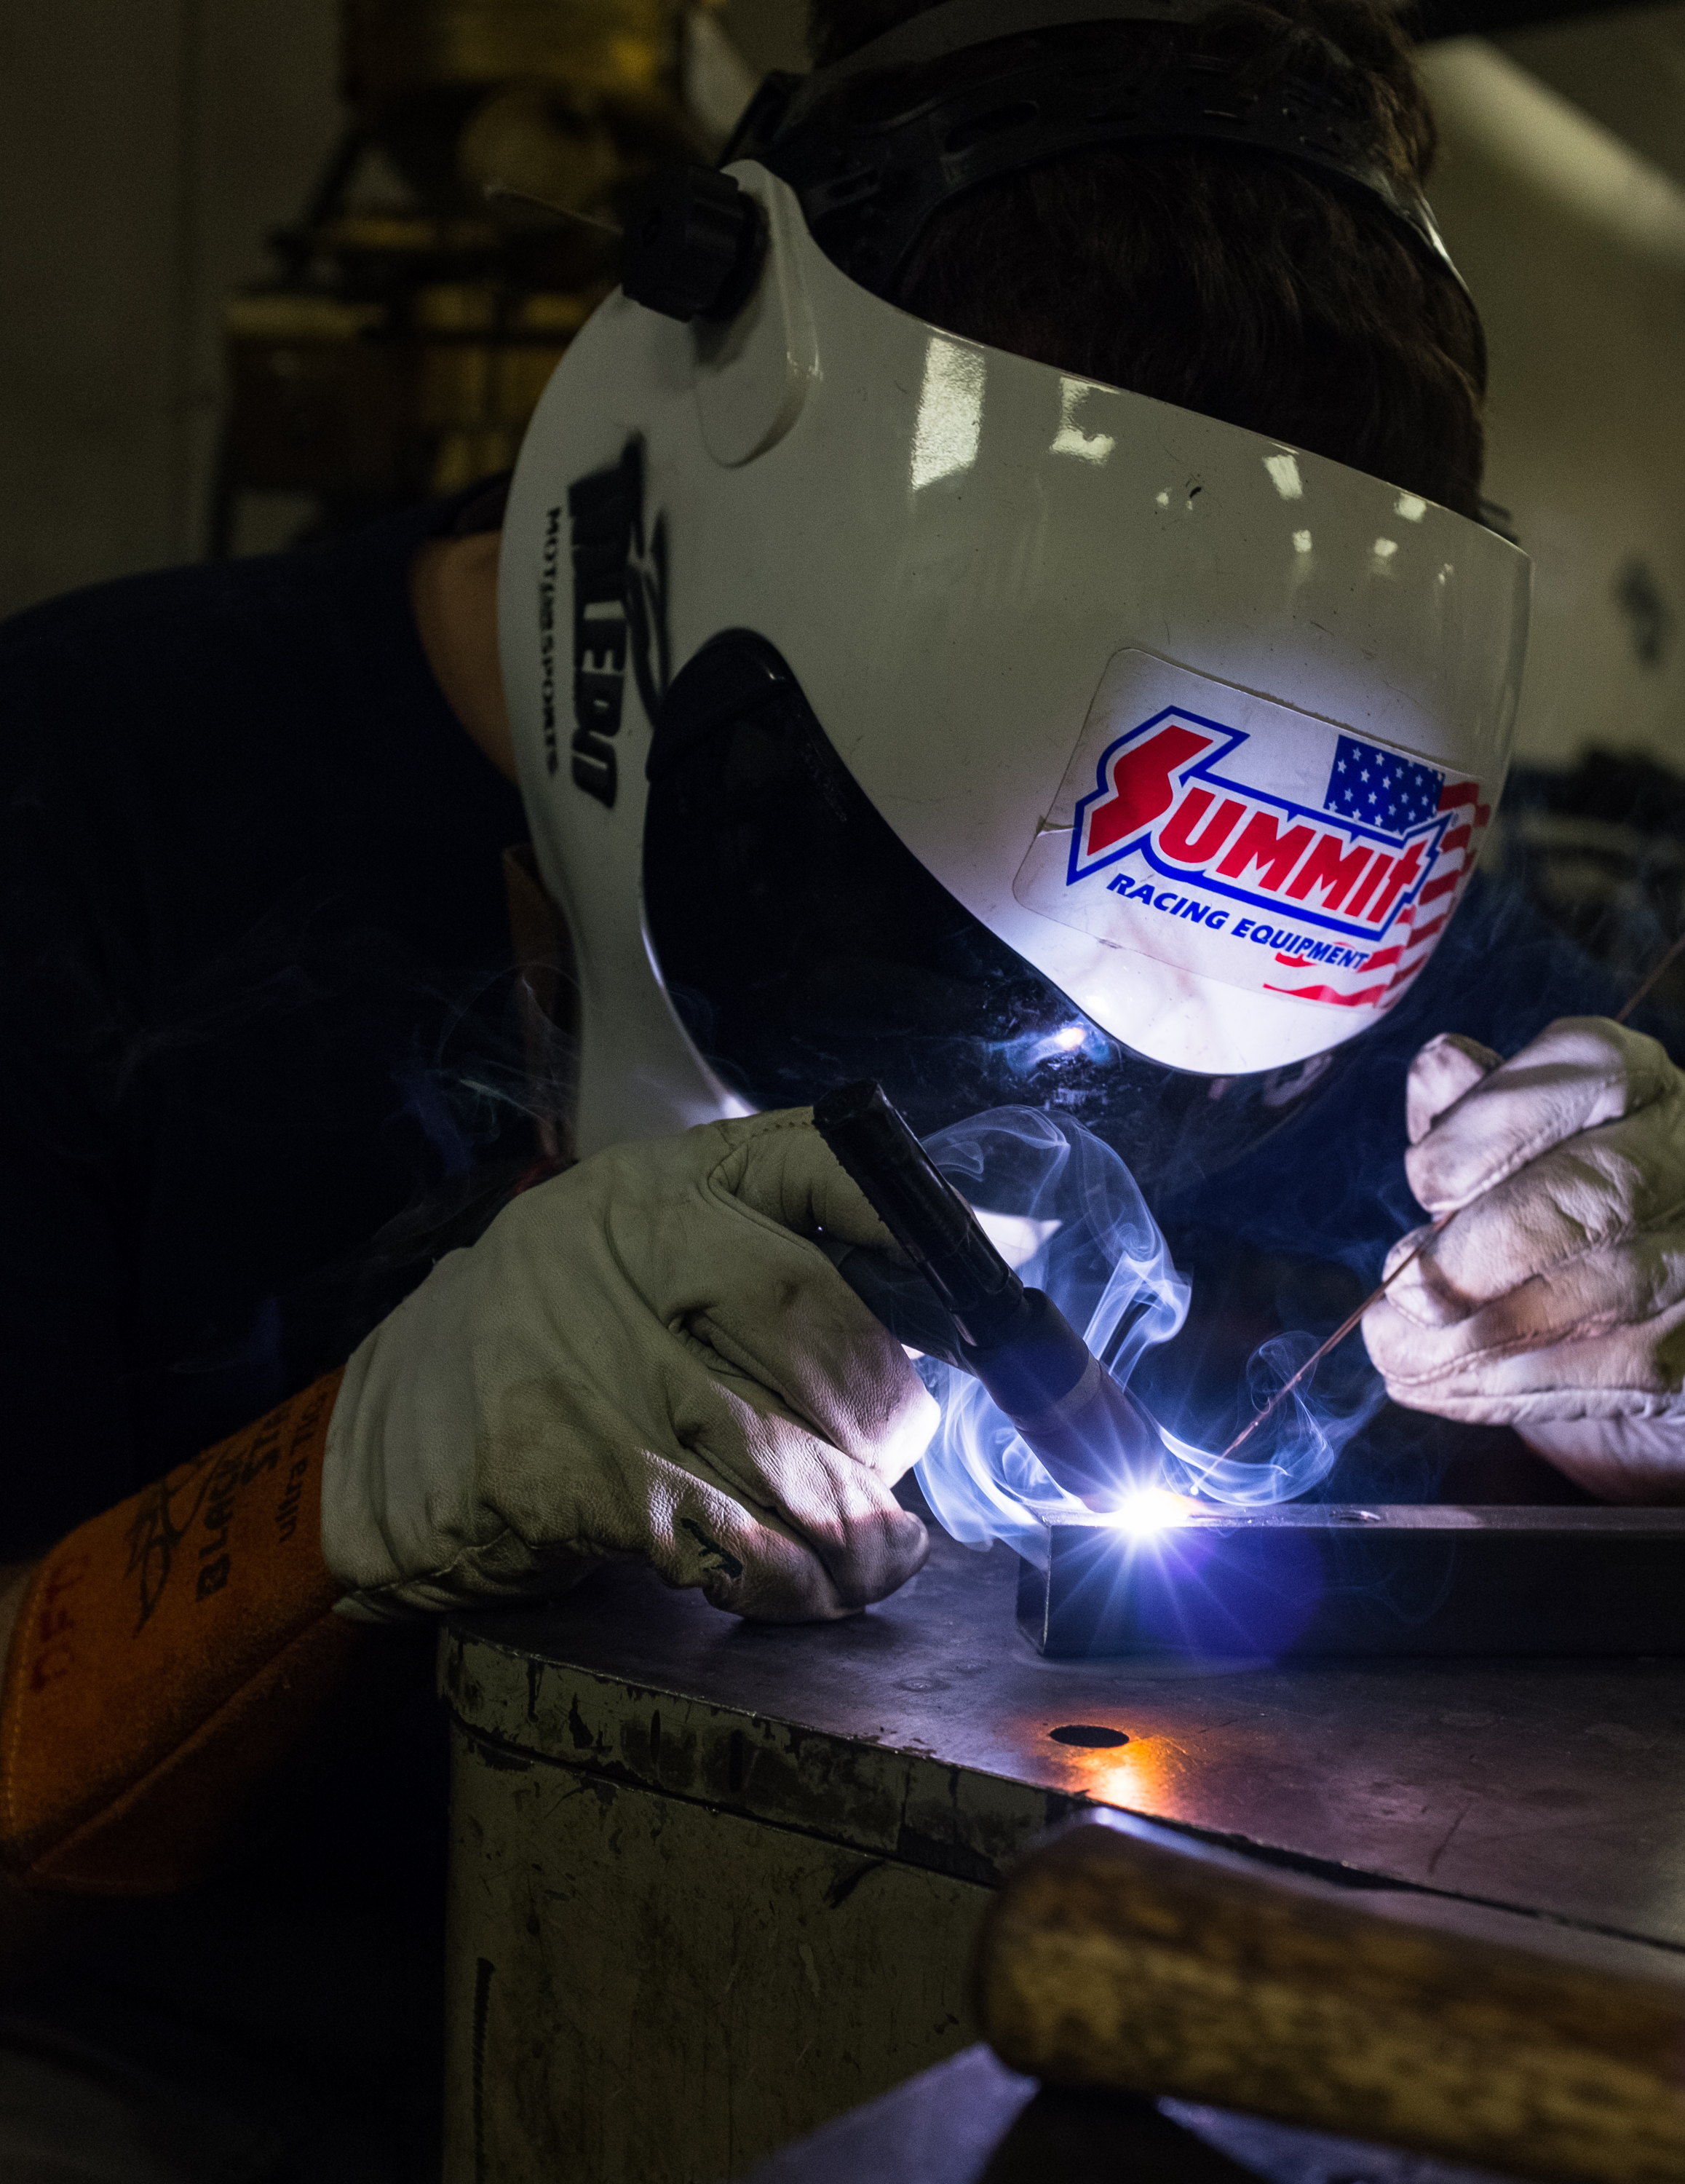 Derek Denti works on welding threaded inserts into square tubing for the front section of the chassis for the current season's car.